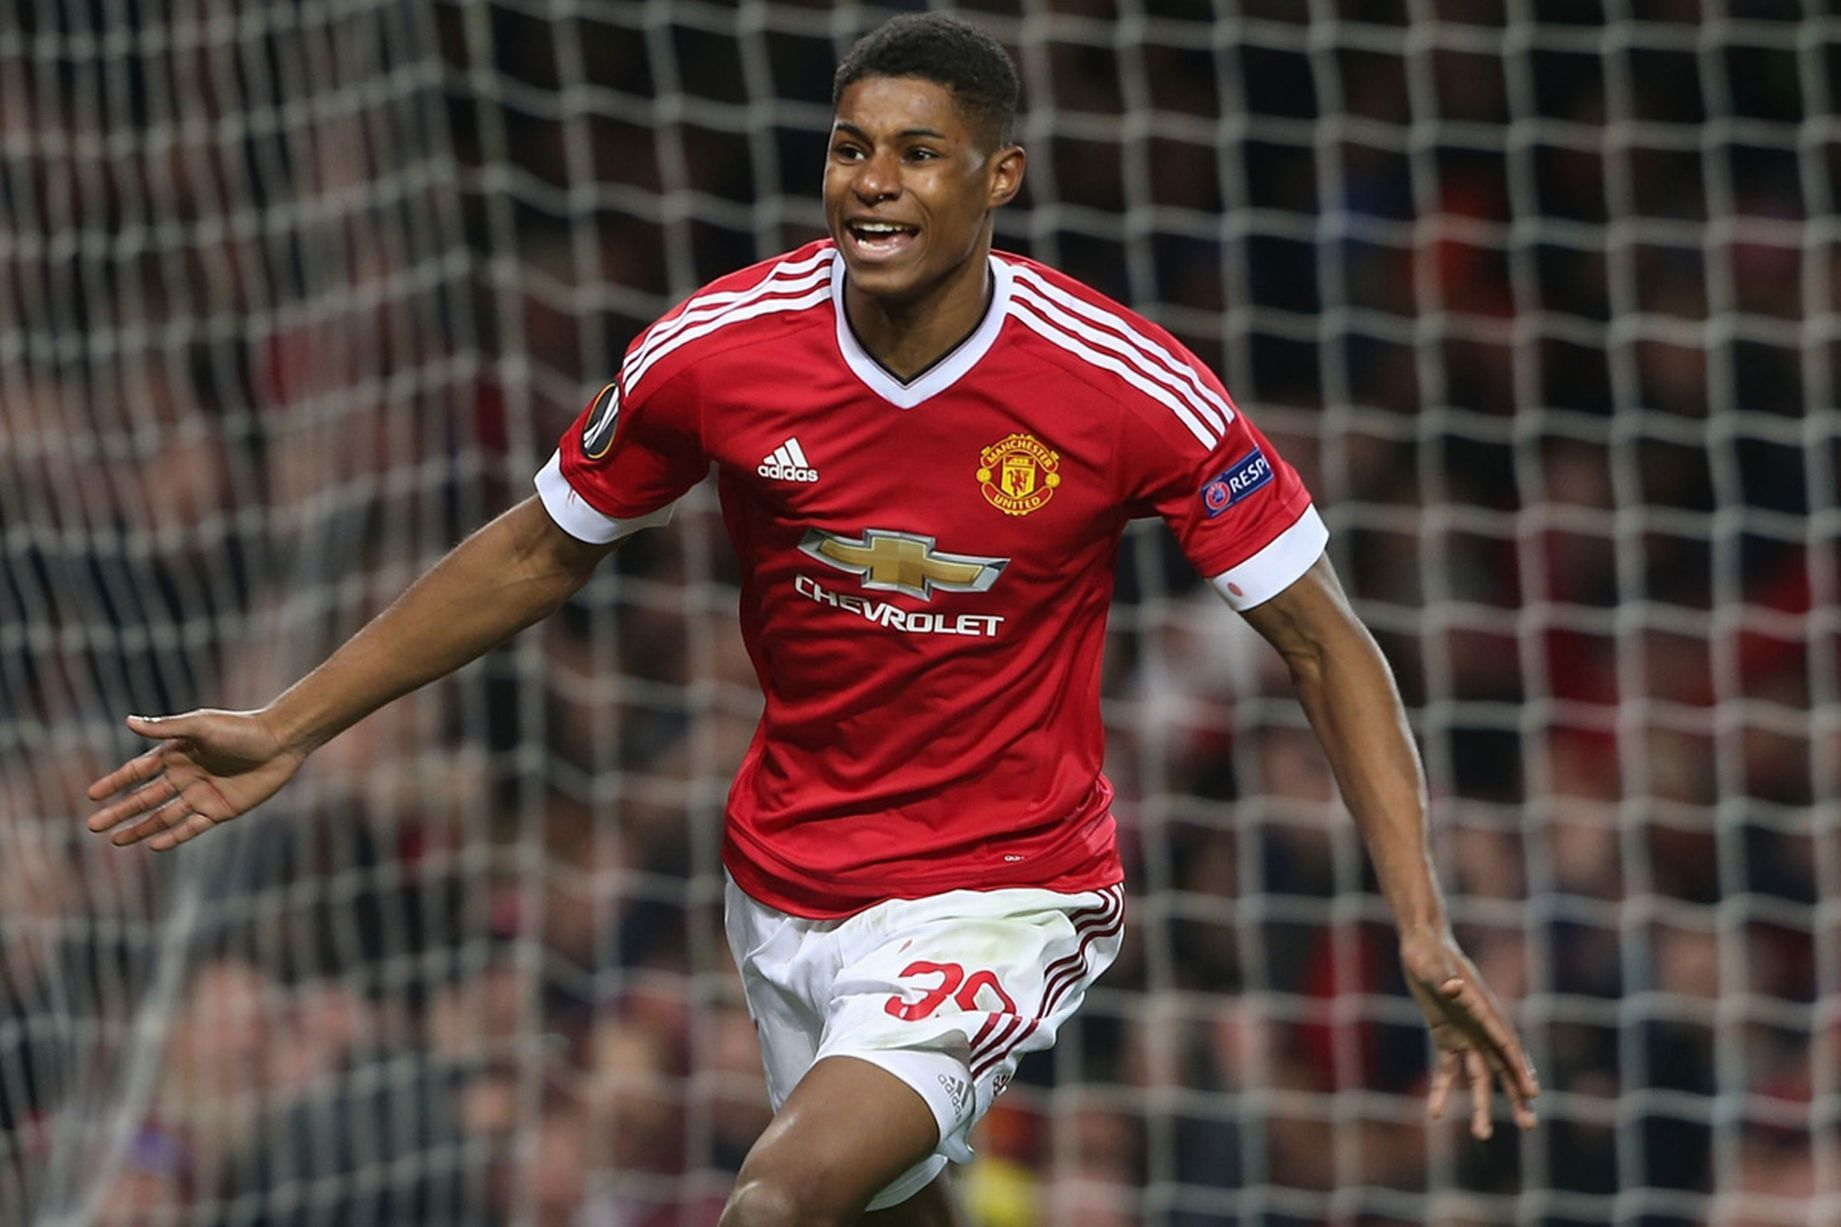 Premier Leagues Wonderkid Will Propably Not Be In The European Championship Squad Football Highlight Manchester United Fans Manchester United